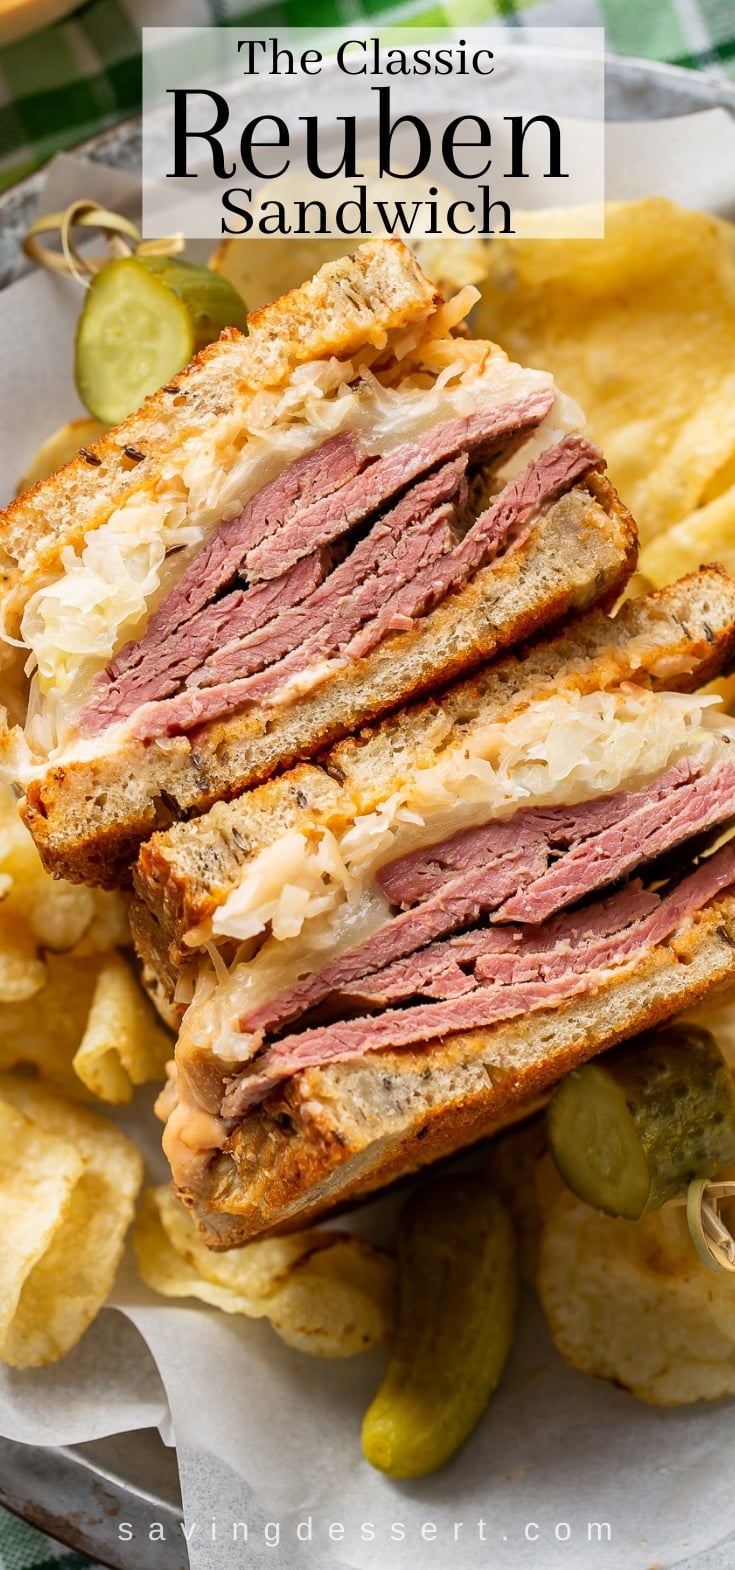 A close up of a Reuben sandwich served with chips